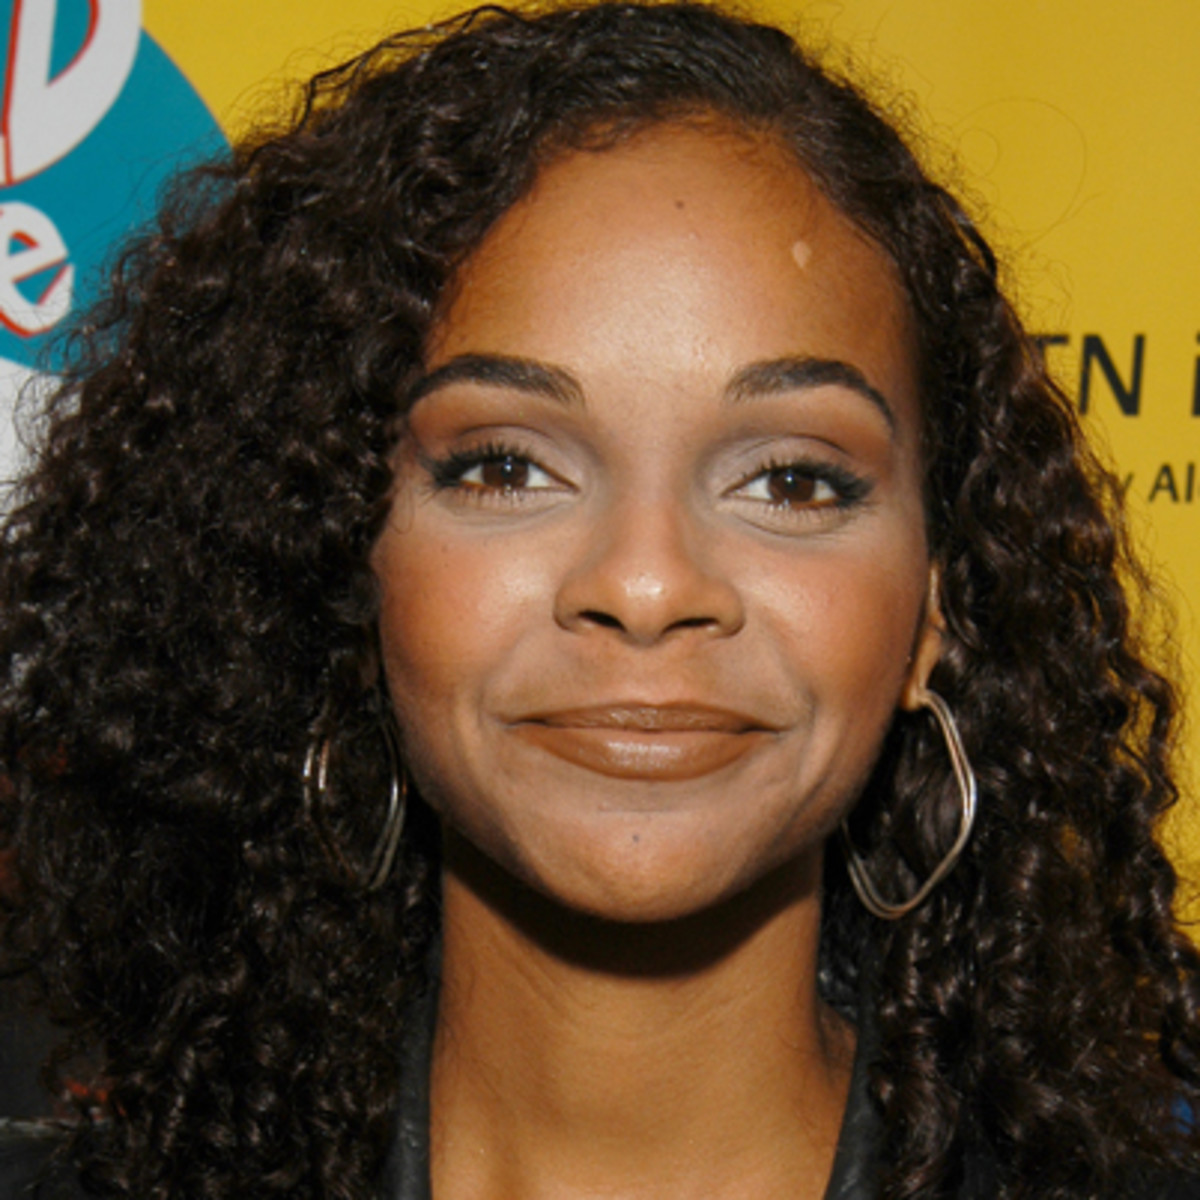 Lark Voorhies born March 25, 1974 (age 44)